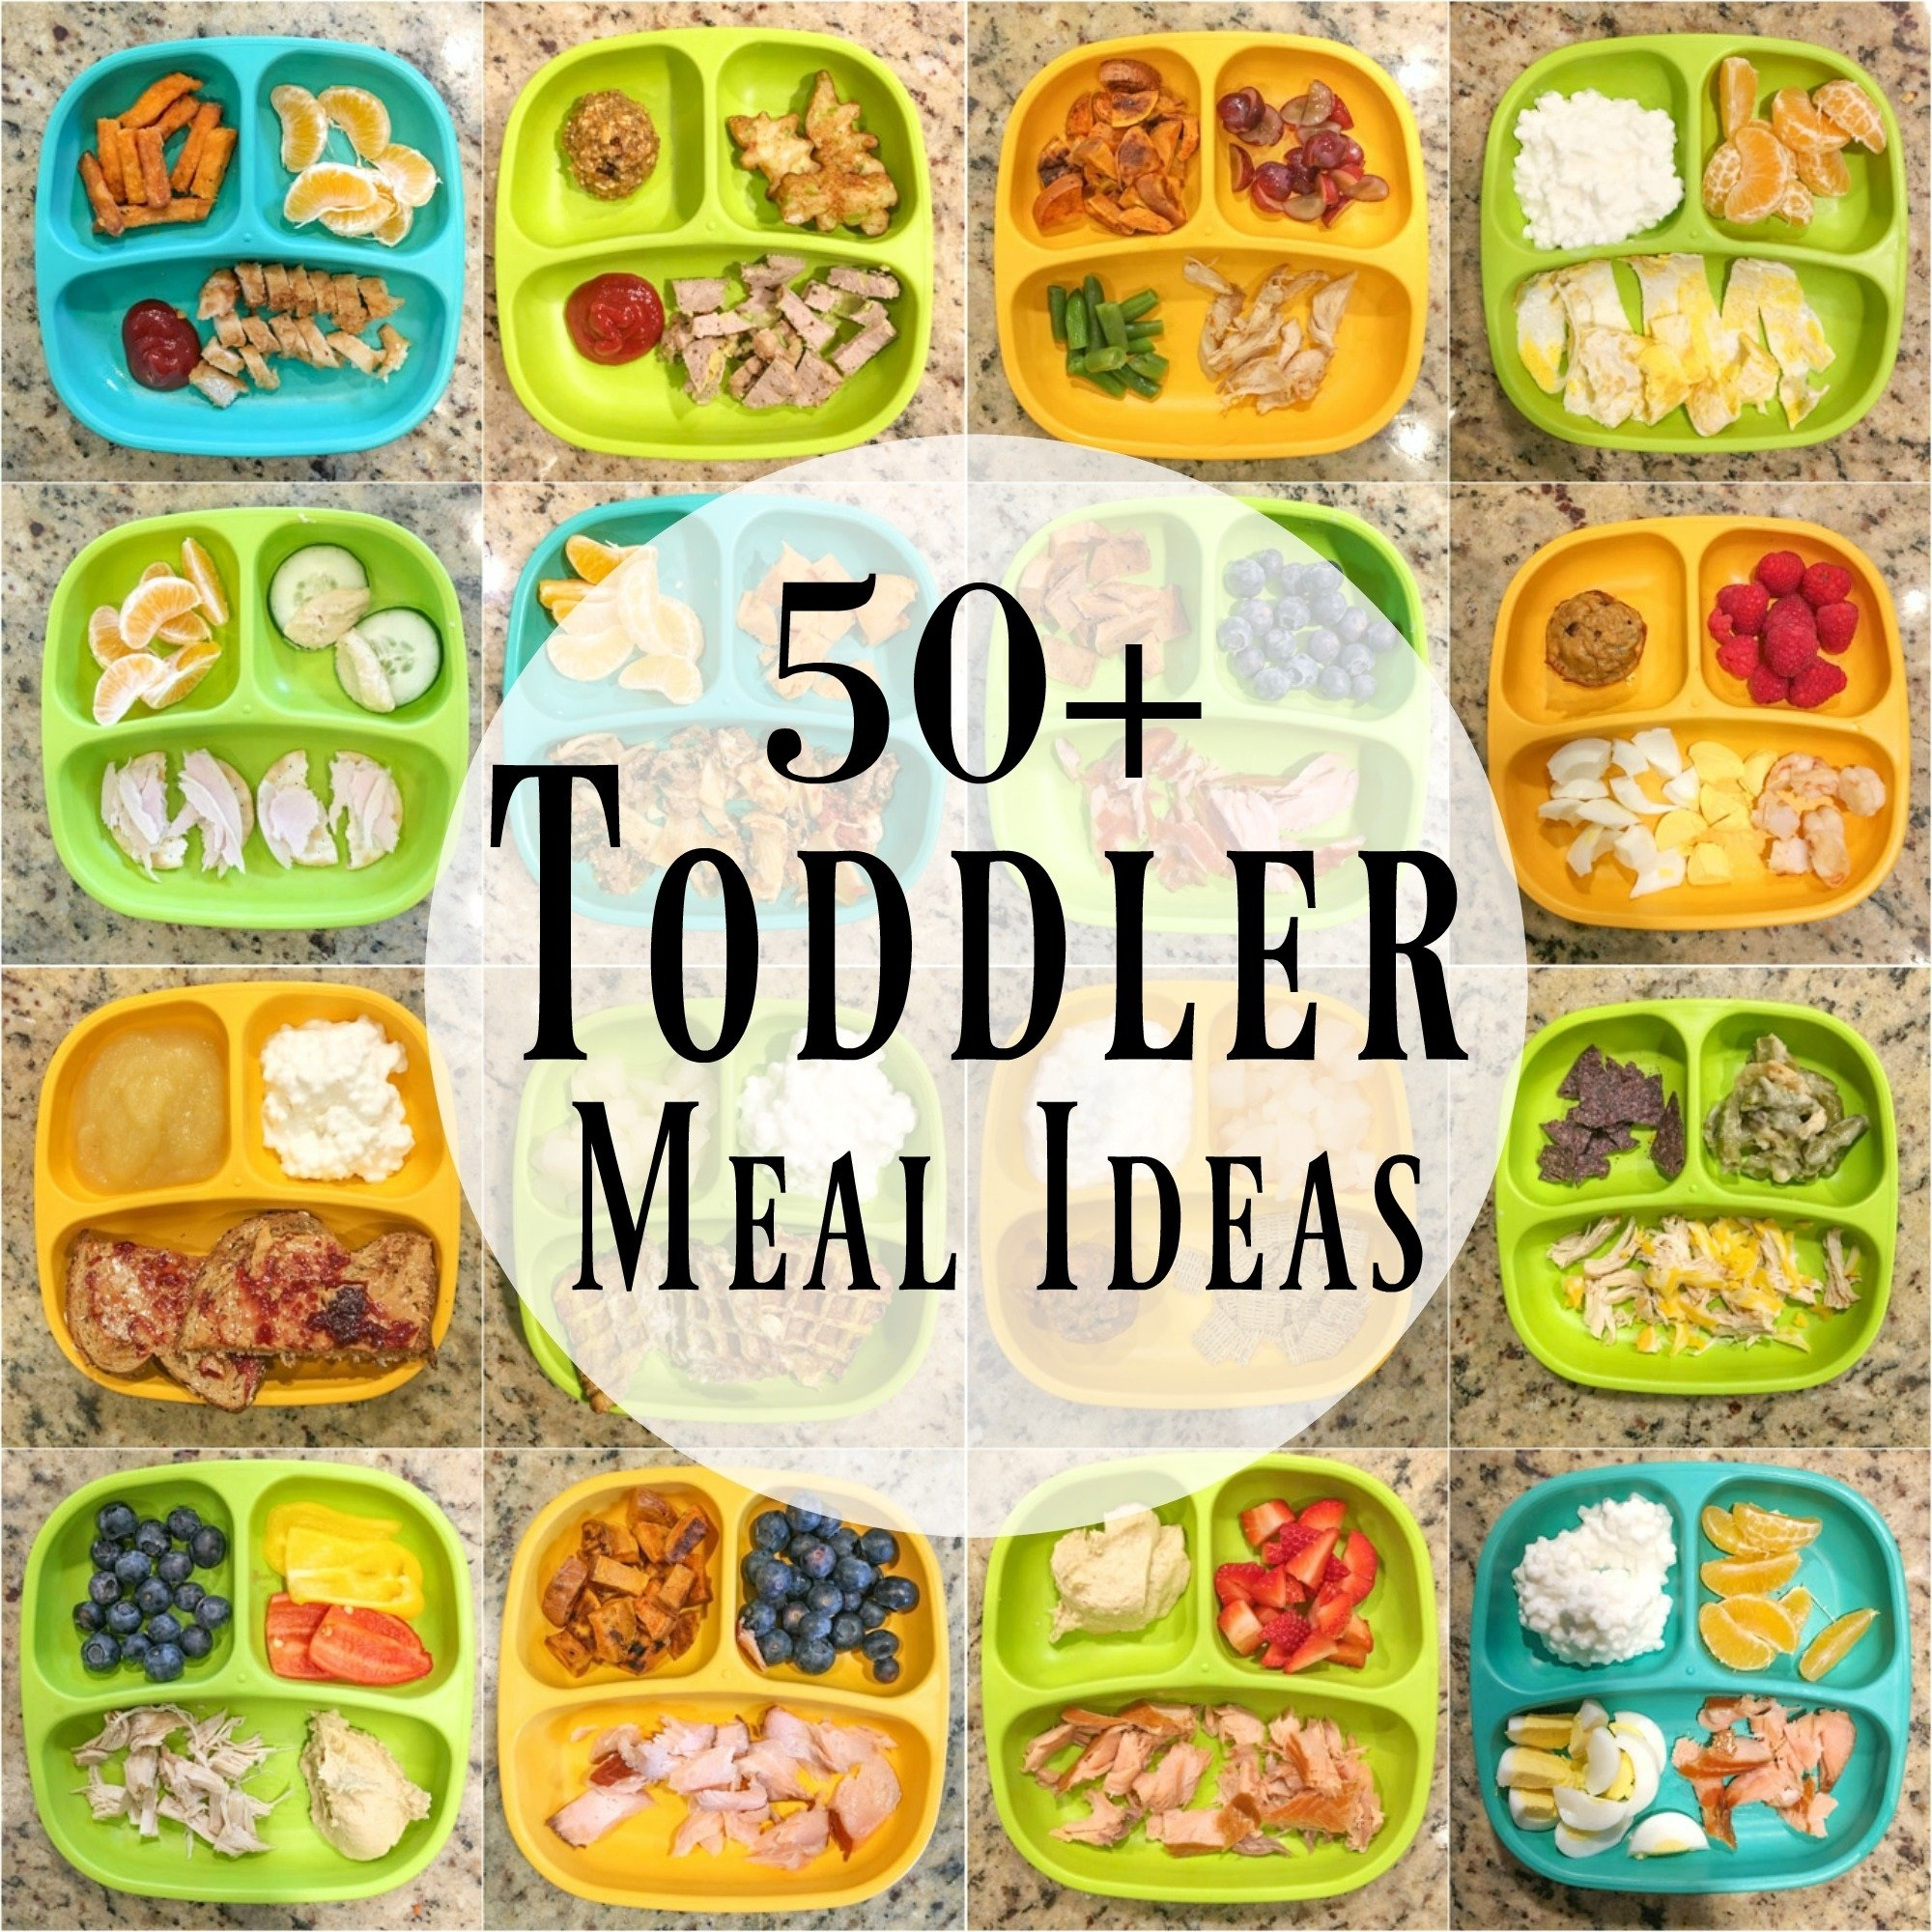 10 Stunning Healthy Meal Ideas For Toddlers 50 healthy toddler meal ideas the lean green bean 3 2021